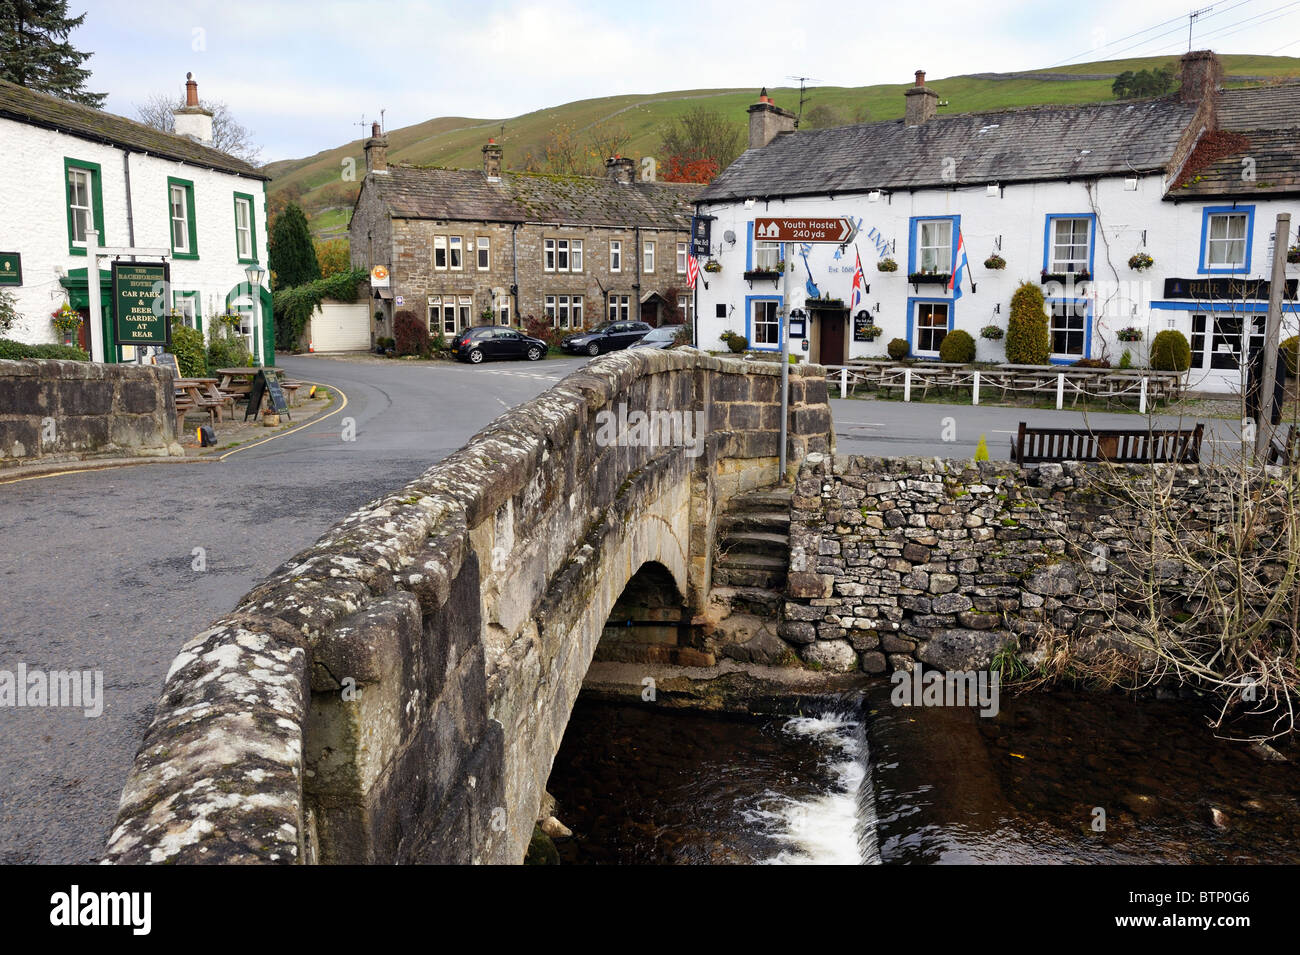 The village of Kettlewell, Wharfedale, Yorkshire Dales National Park, England. - Stock Image